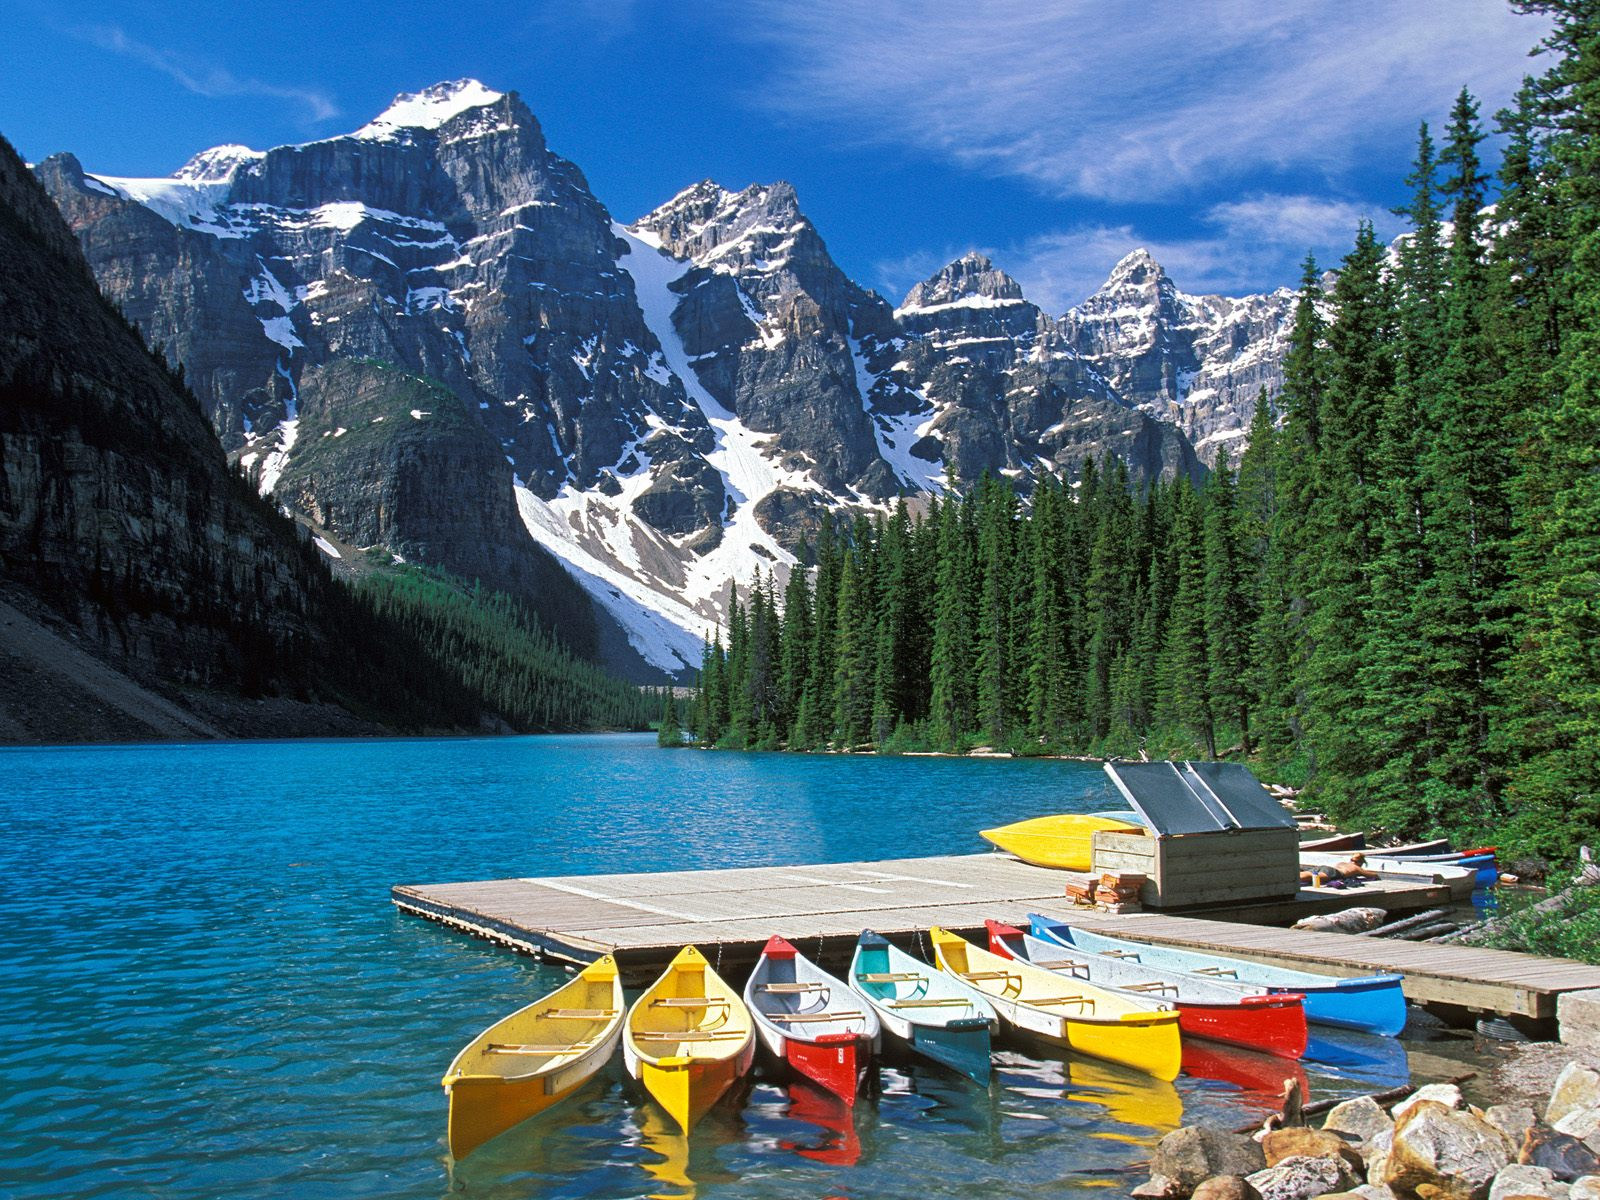 Park Canada photo Moraine Lake Banff National Park Canada wallpaper 1600x1200